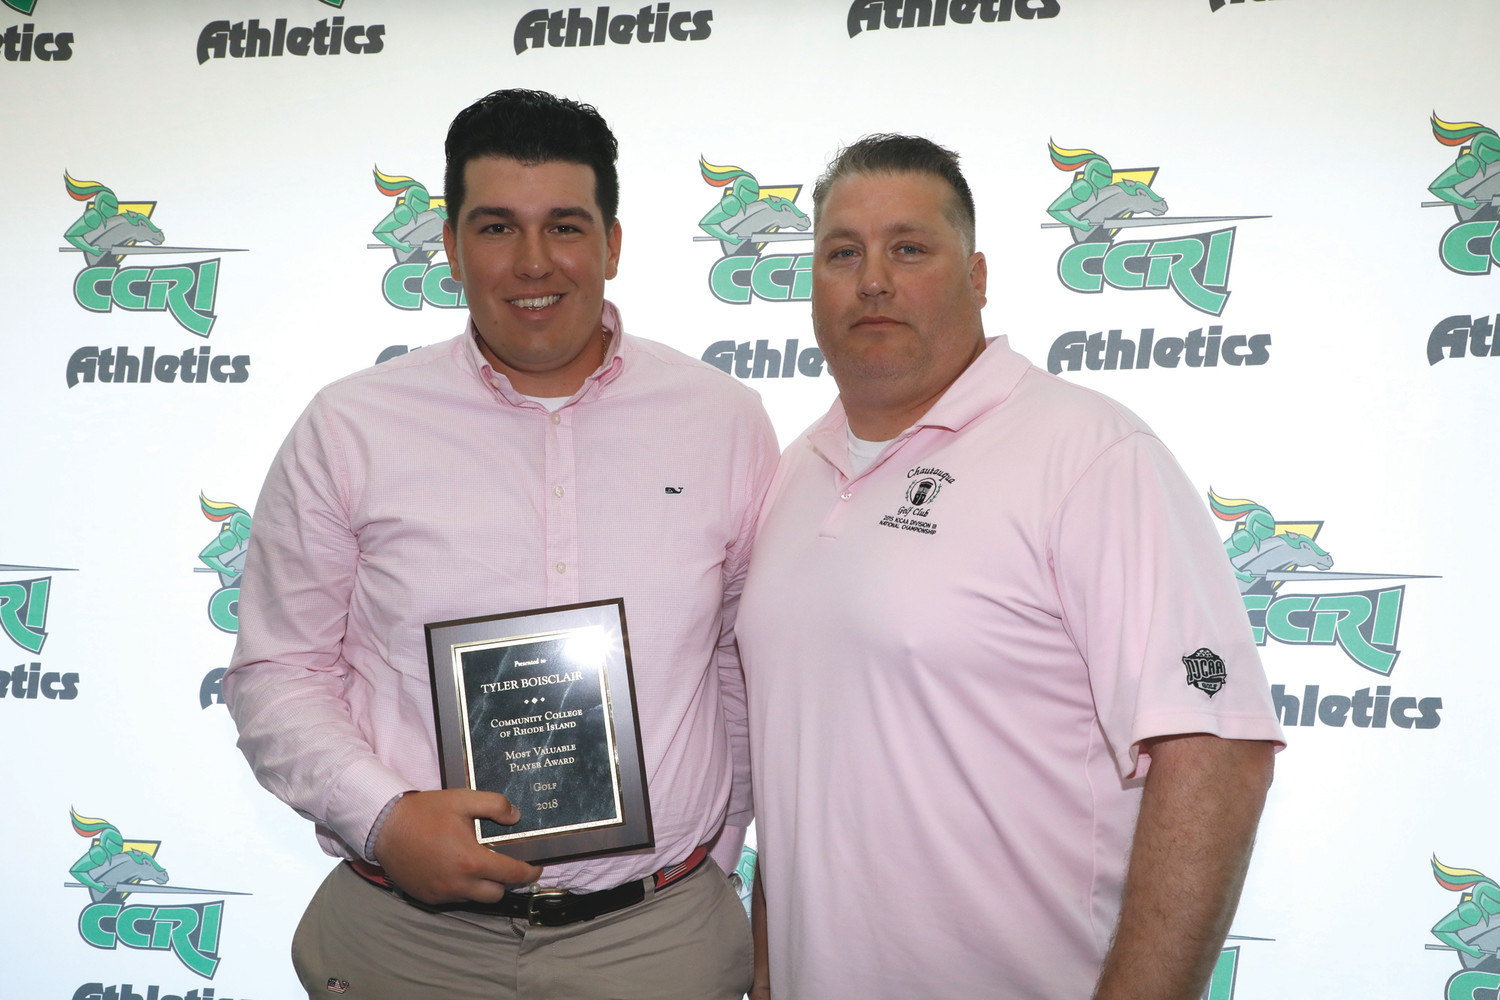 MOST VALUABLE PLAYER: West Warwick native and CCRI golfer Tyler Boisclair (left) celebrates his CCRI Golf MVP award with coach James Stringfellow (right.)